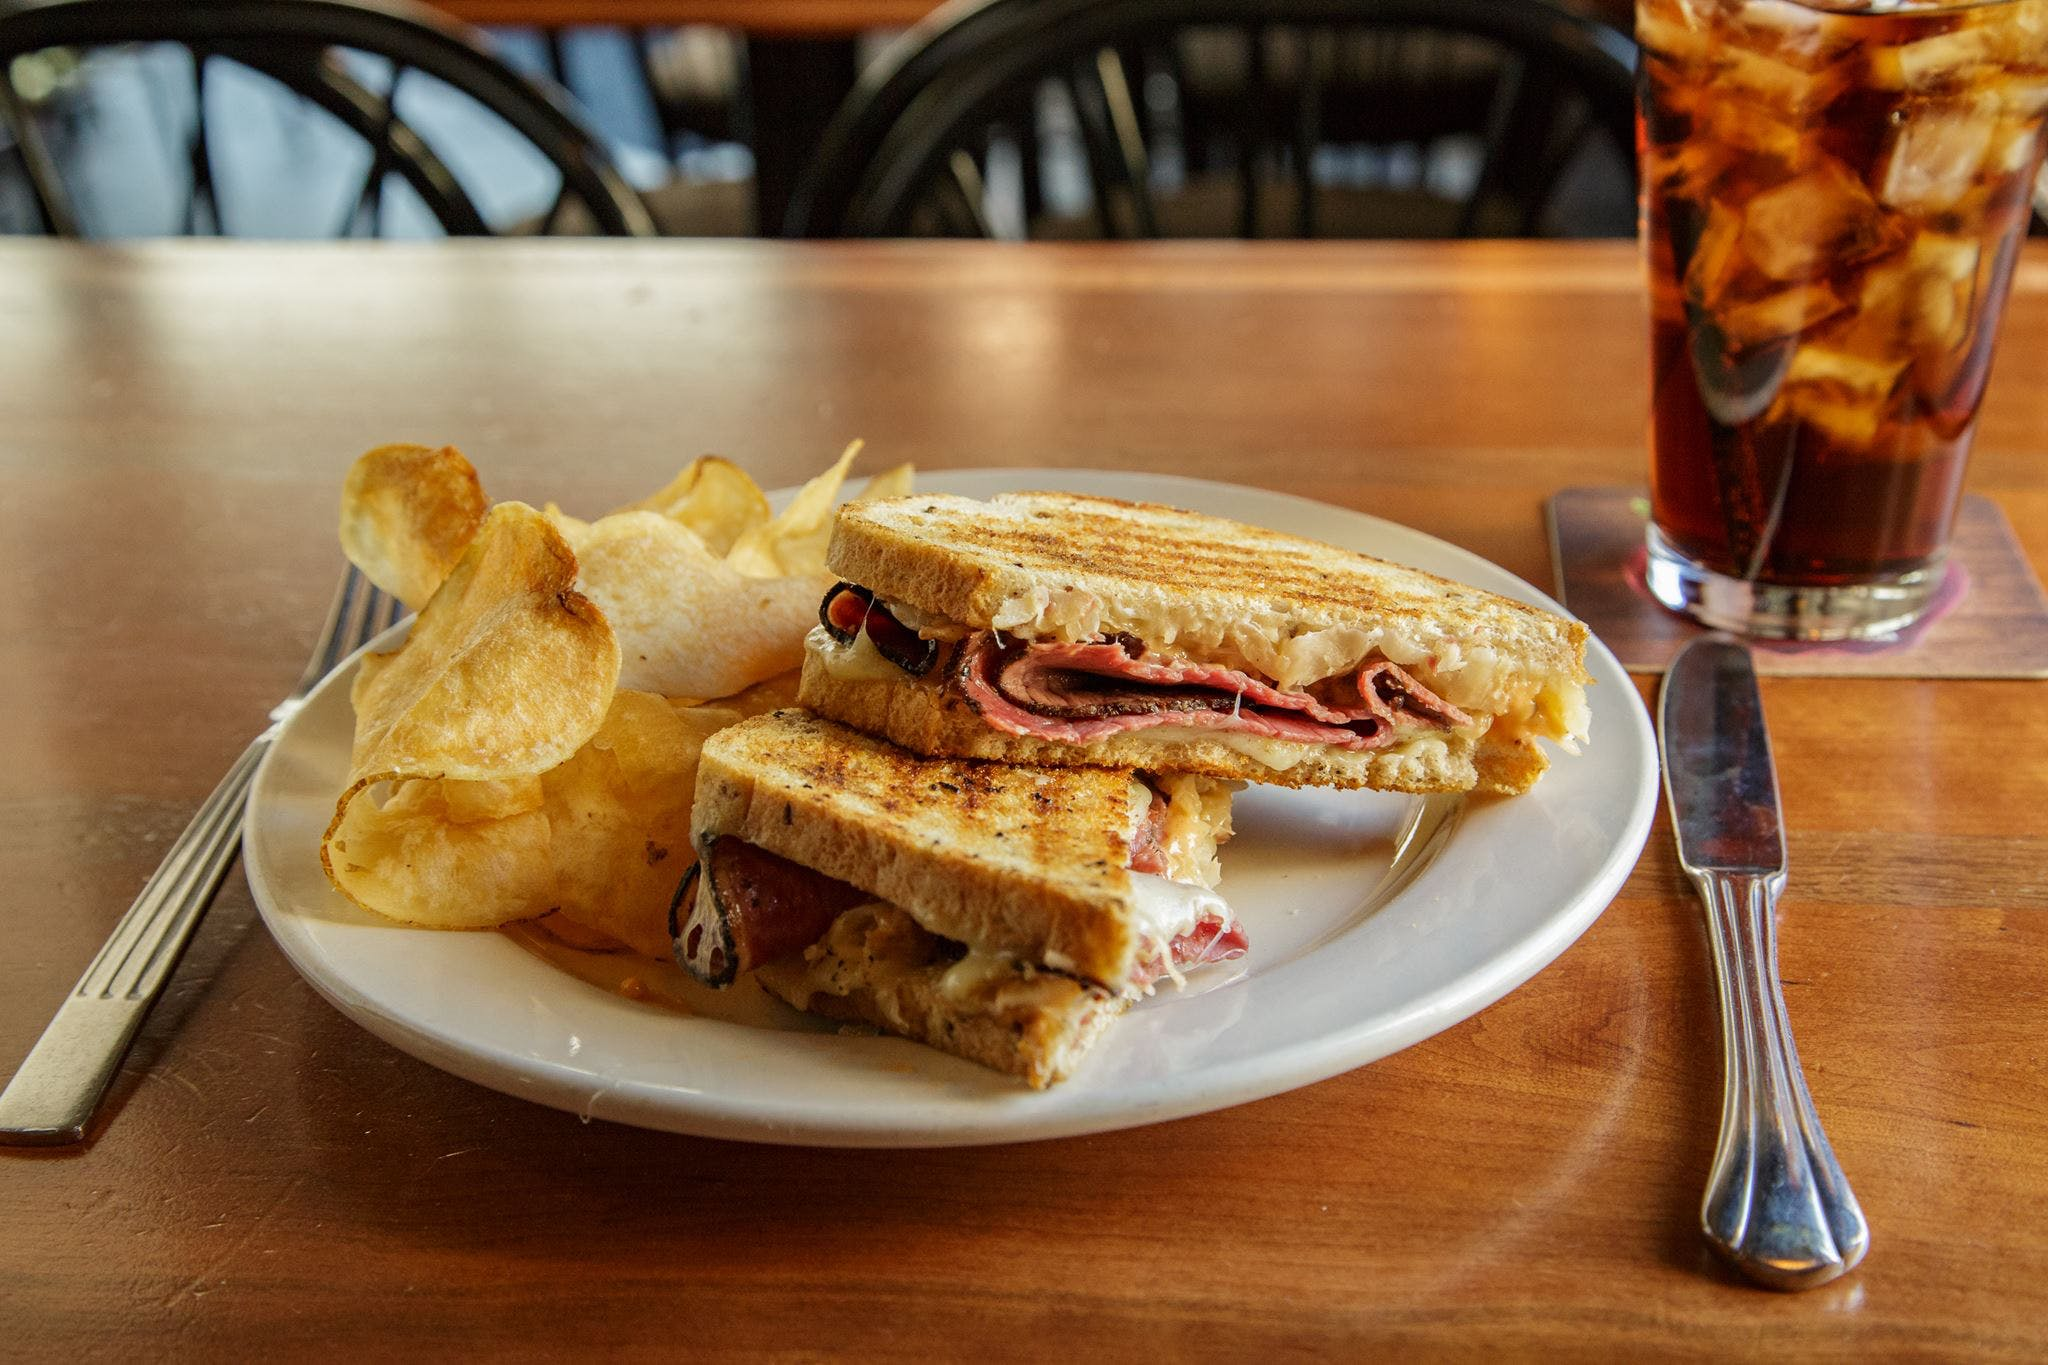 2. Bud B's Rockin's Reuben from Argus Bar & Grill in Madison, WI